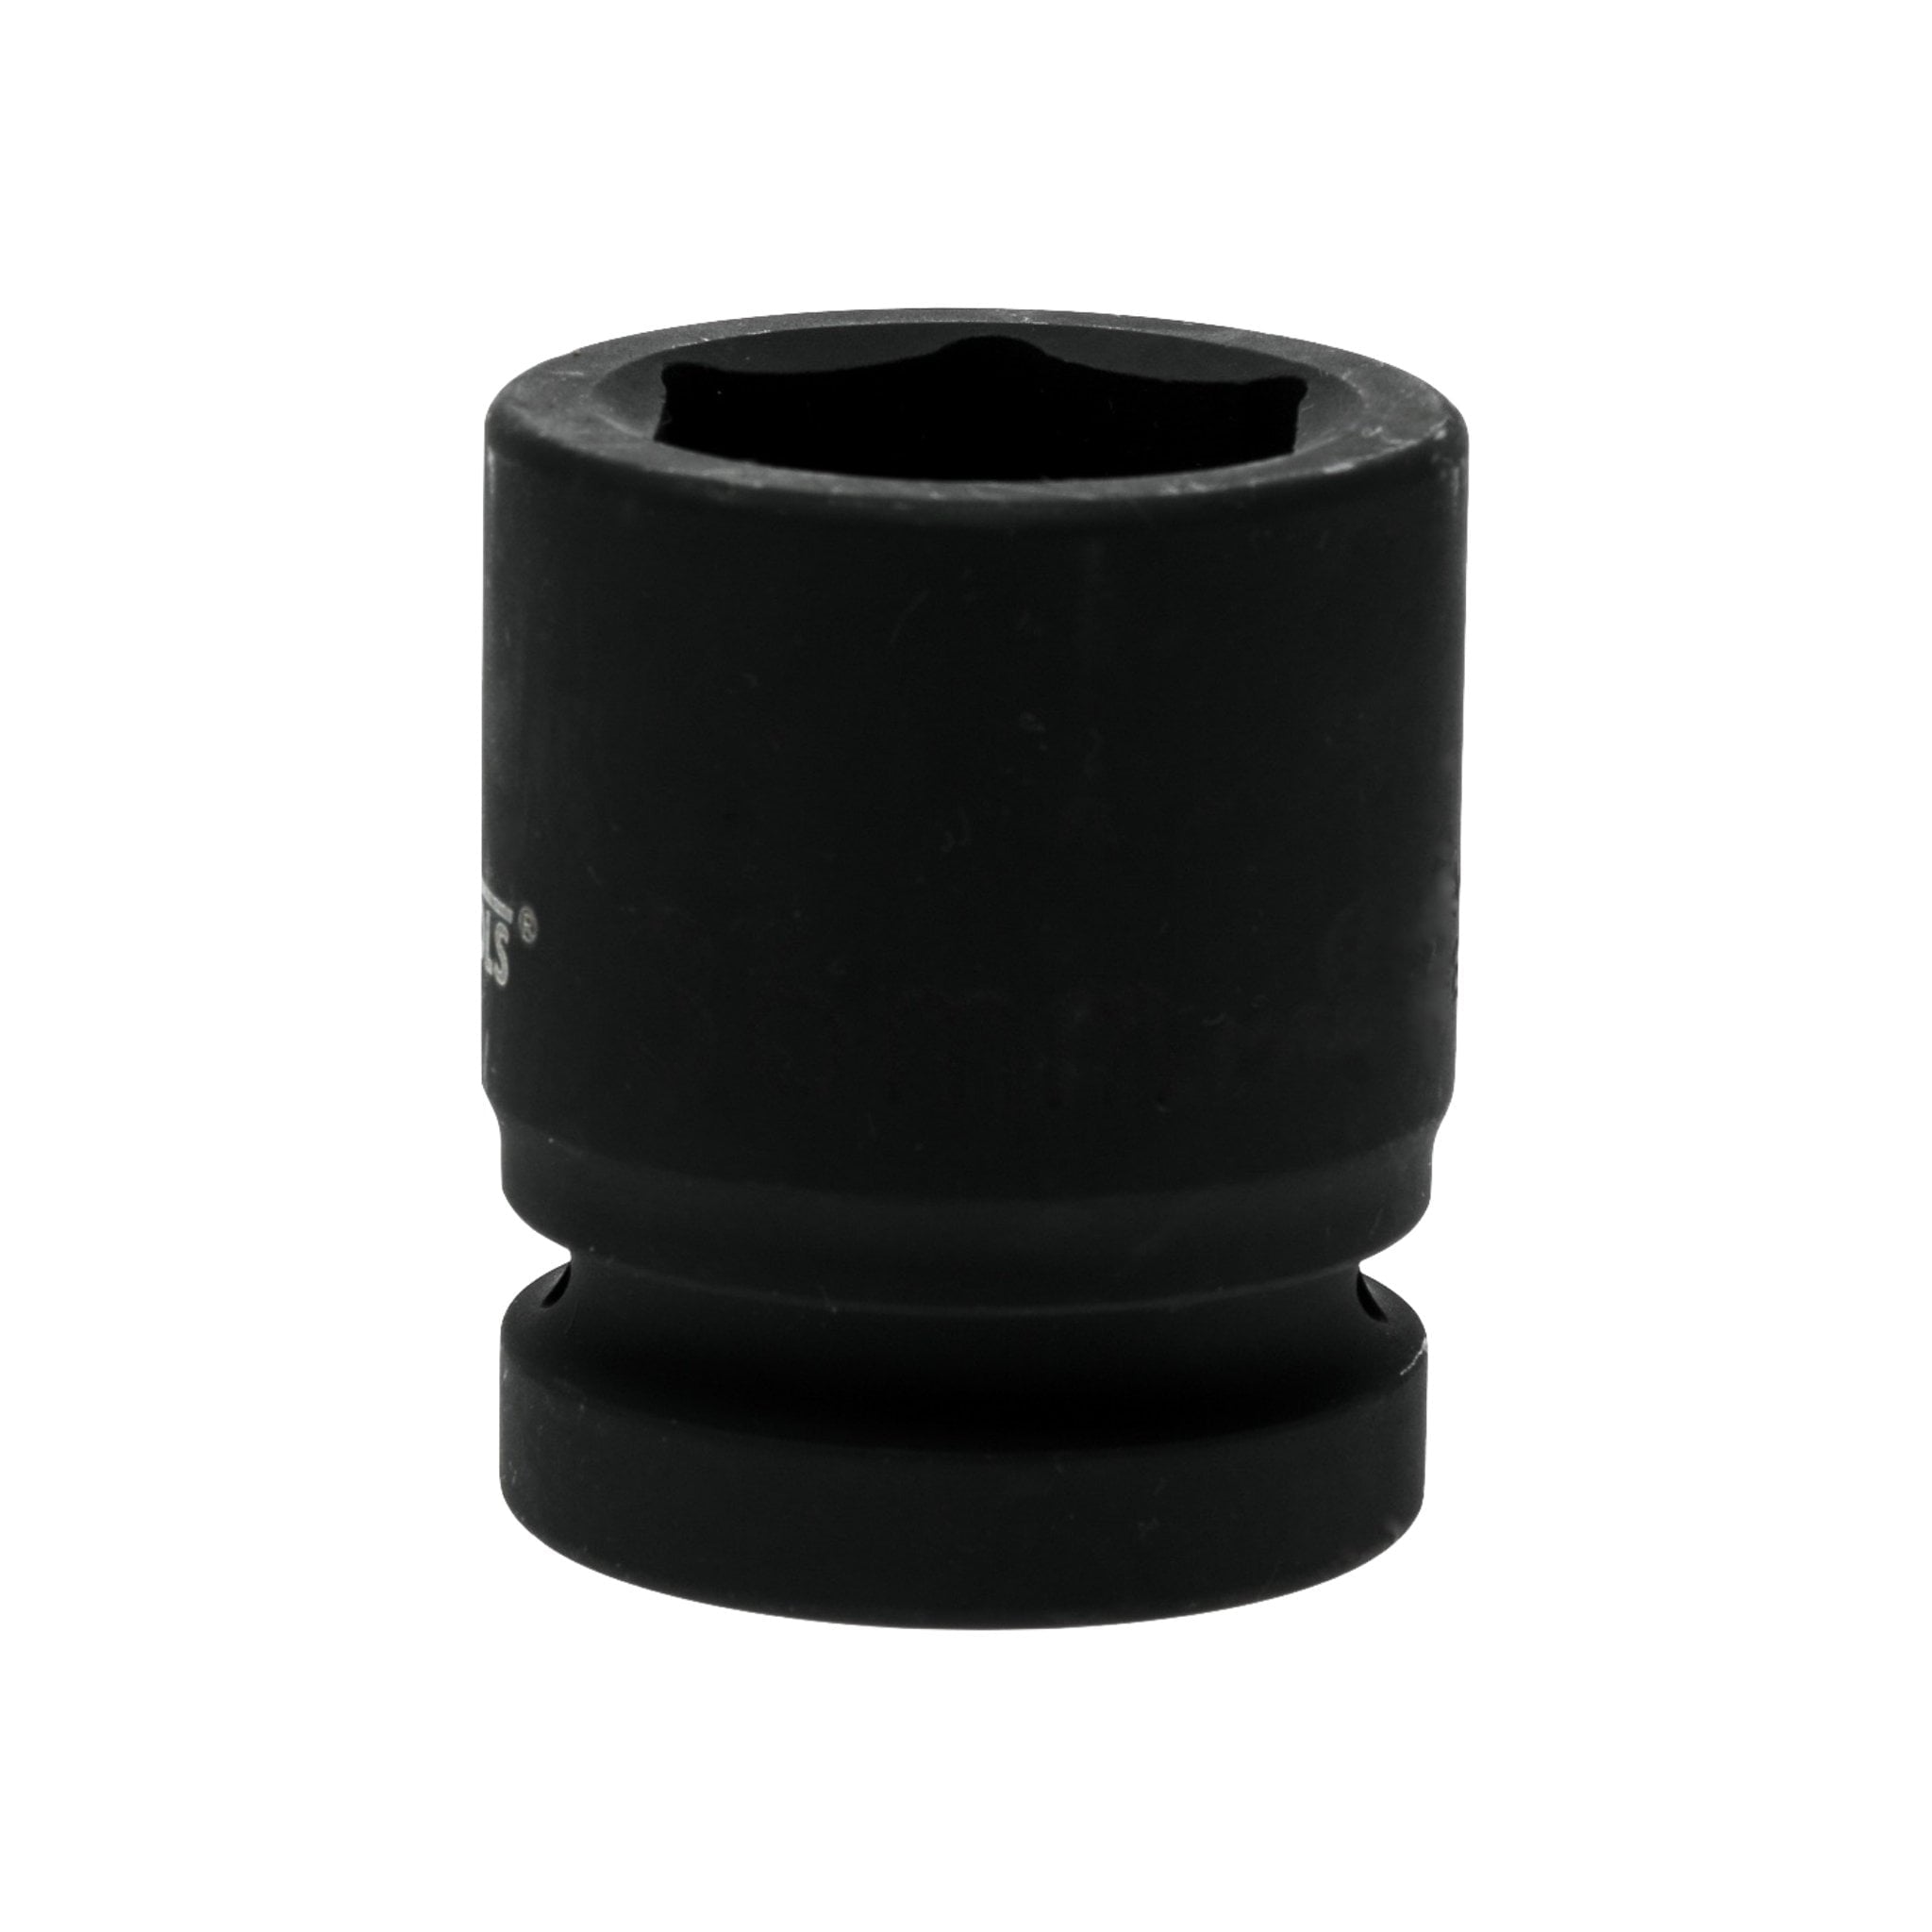 Teng Tools 50mm 1 Inch Drive Regular Metric Impact Socket - 910550